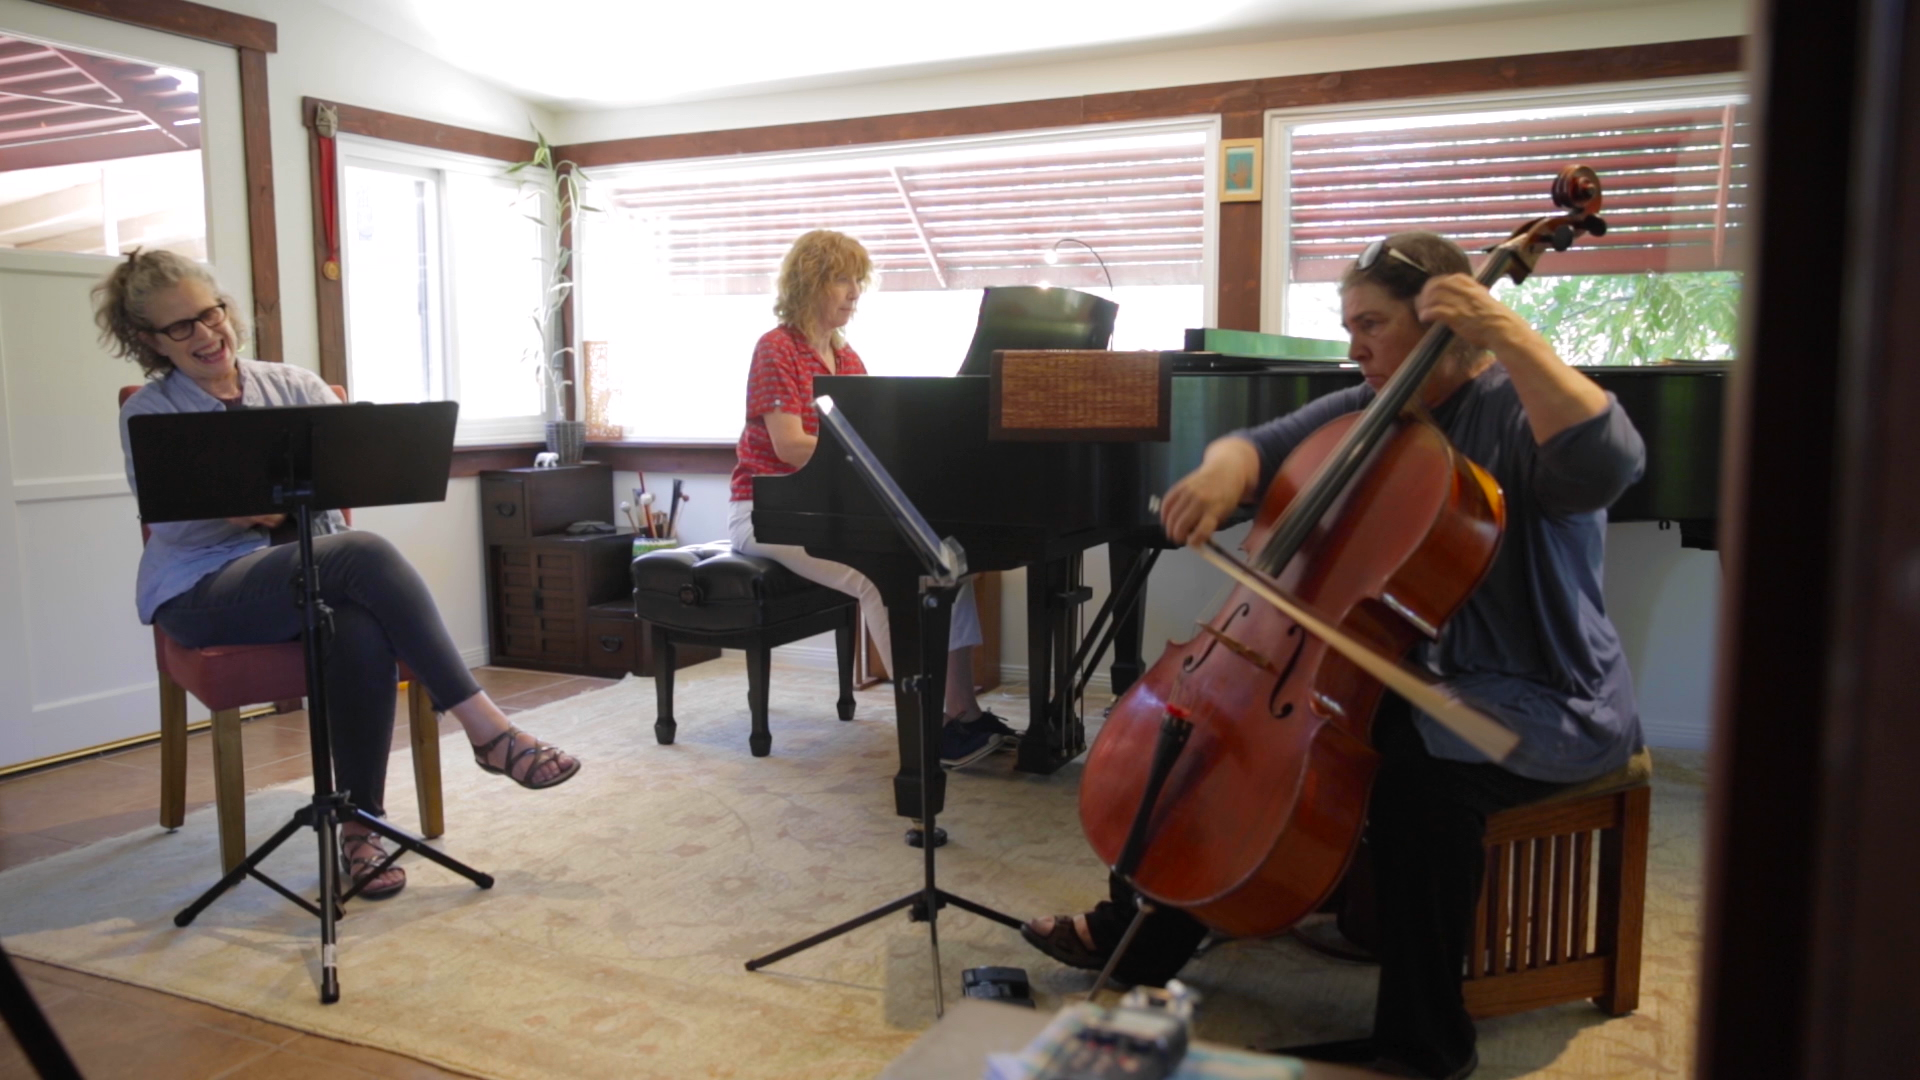 Composer Kitty Brazelton watches pianist Vicki Ray and cellist Erika Duke-Kirkpatrick play through  Down from the High Cliff  (2017) for the first time in July 2019. Brazelton composed the duo in tribute to her centenarian father's fierce battle to live.